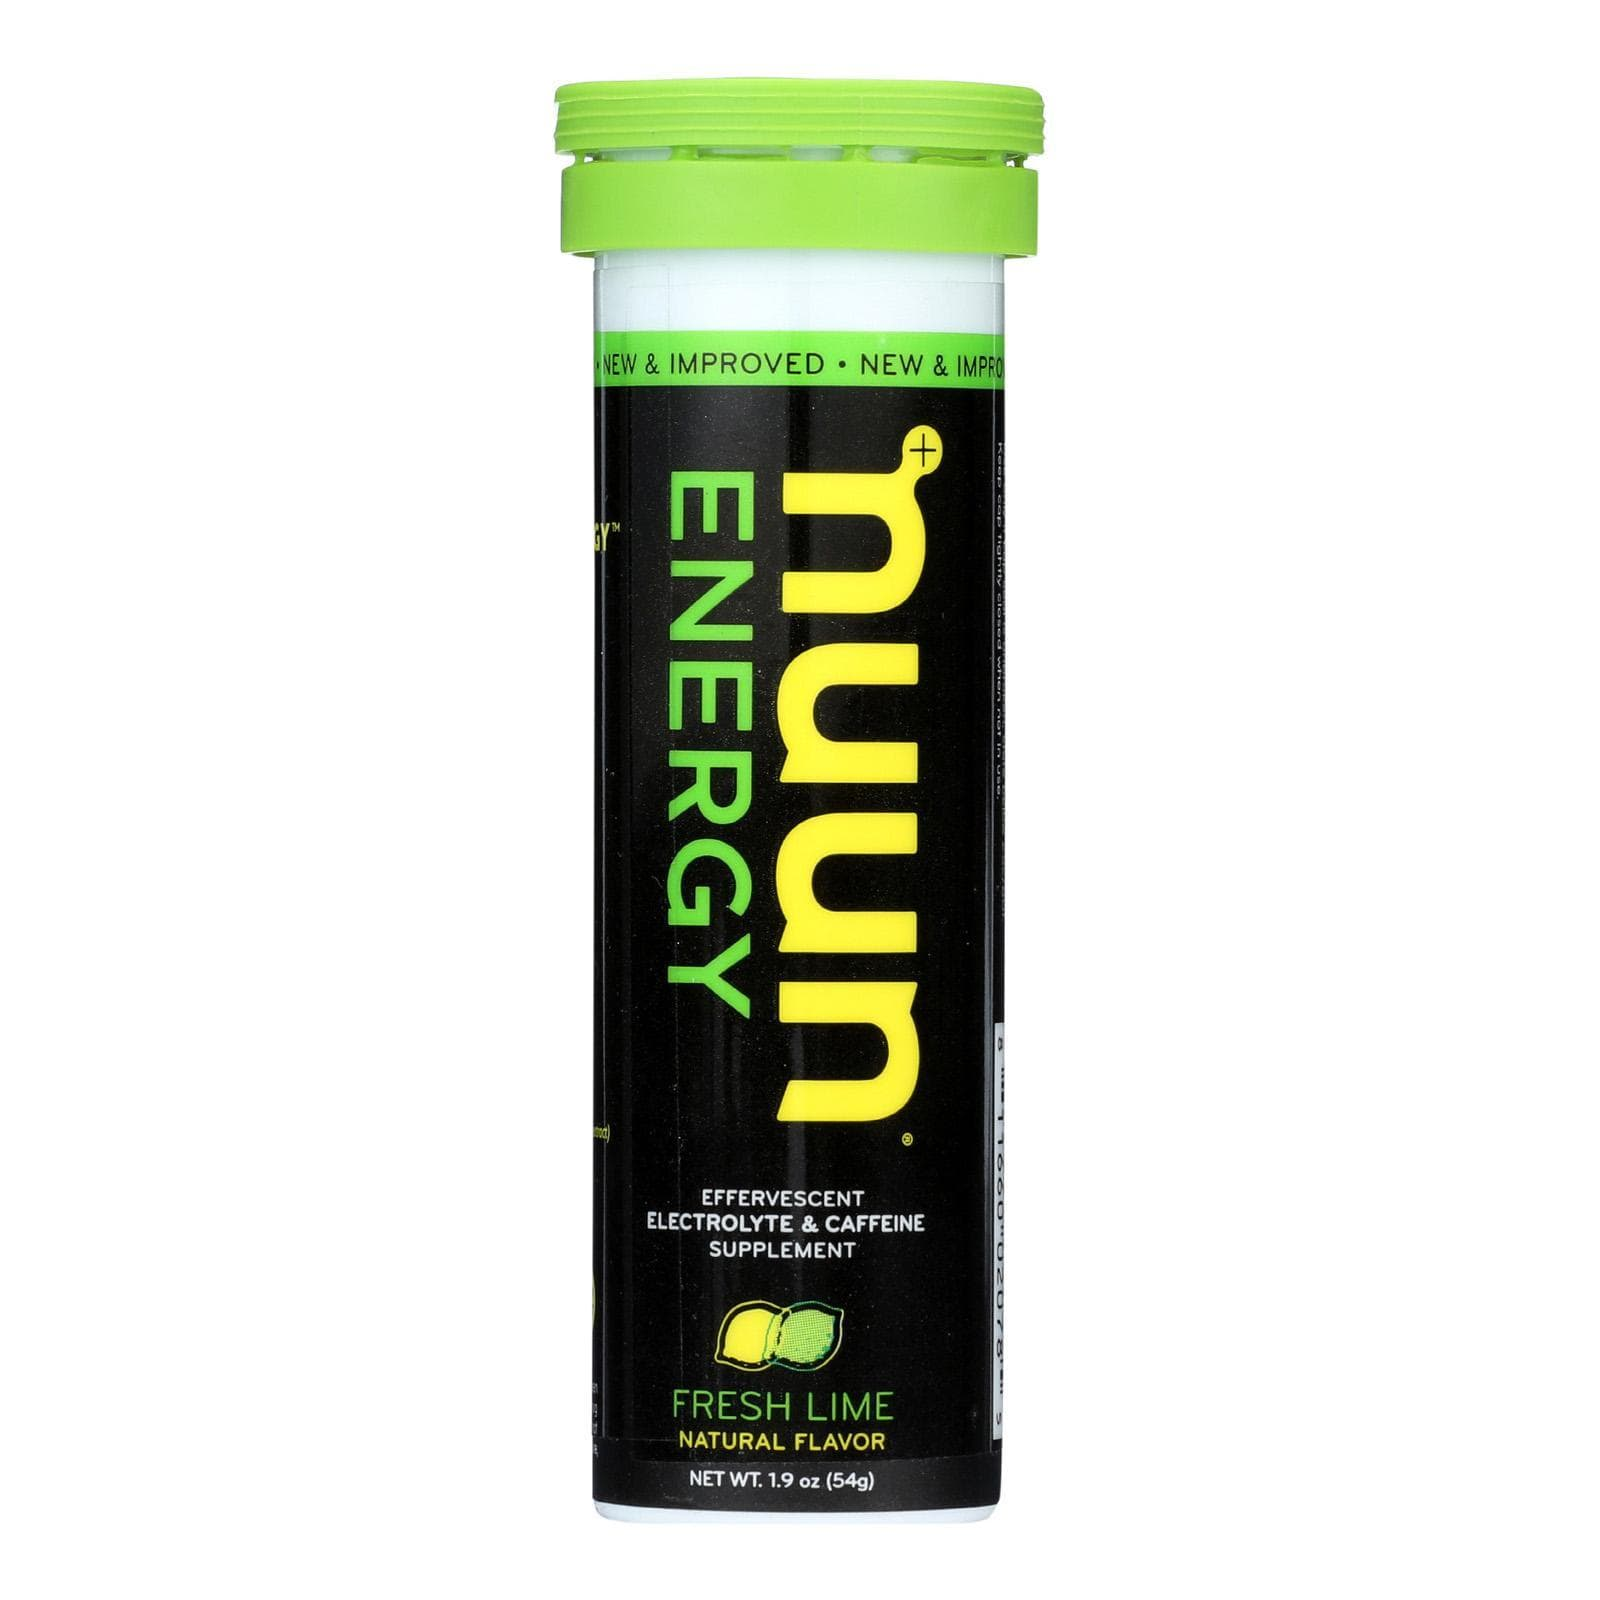 Nuun Hydration Sports And Fitness Nuun Hydration Drink Tab - Energy - Lemon-lime - 10 Tablets - Case Of 8